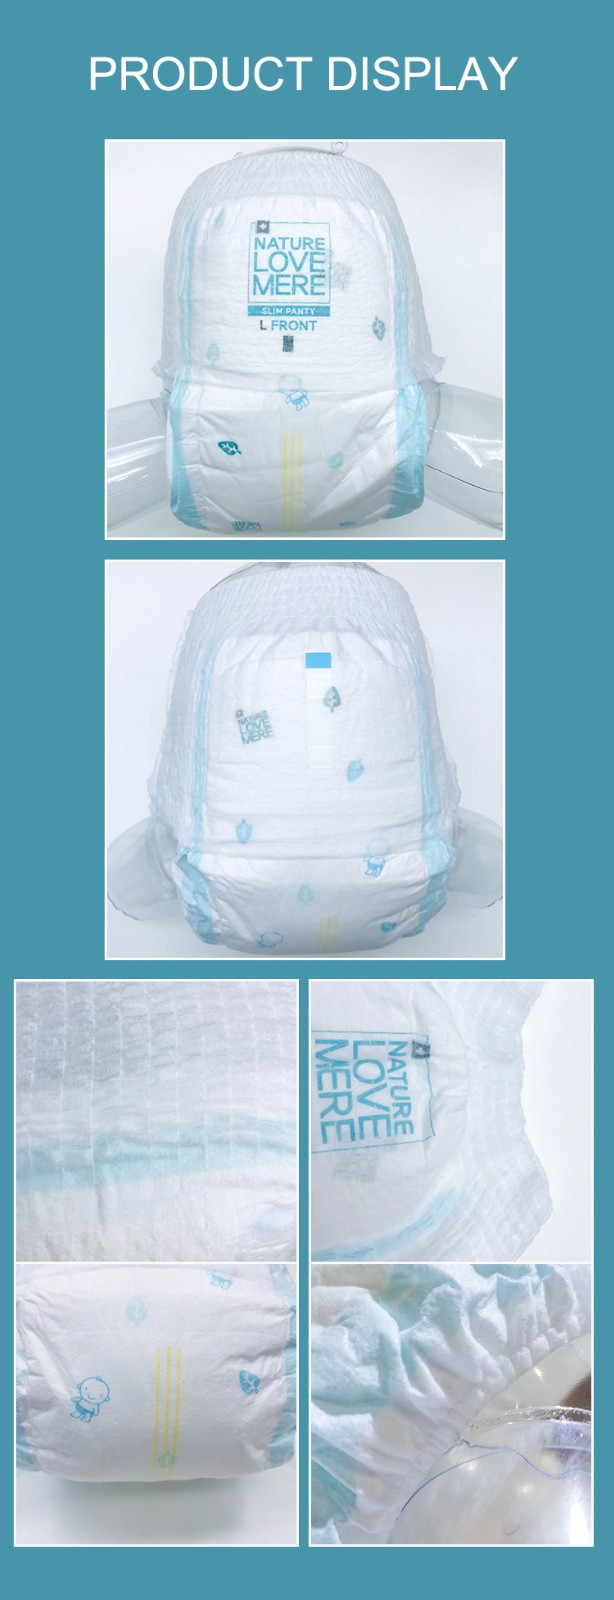 breathable baby diaper price softcare for baby-7